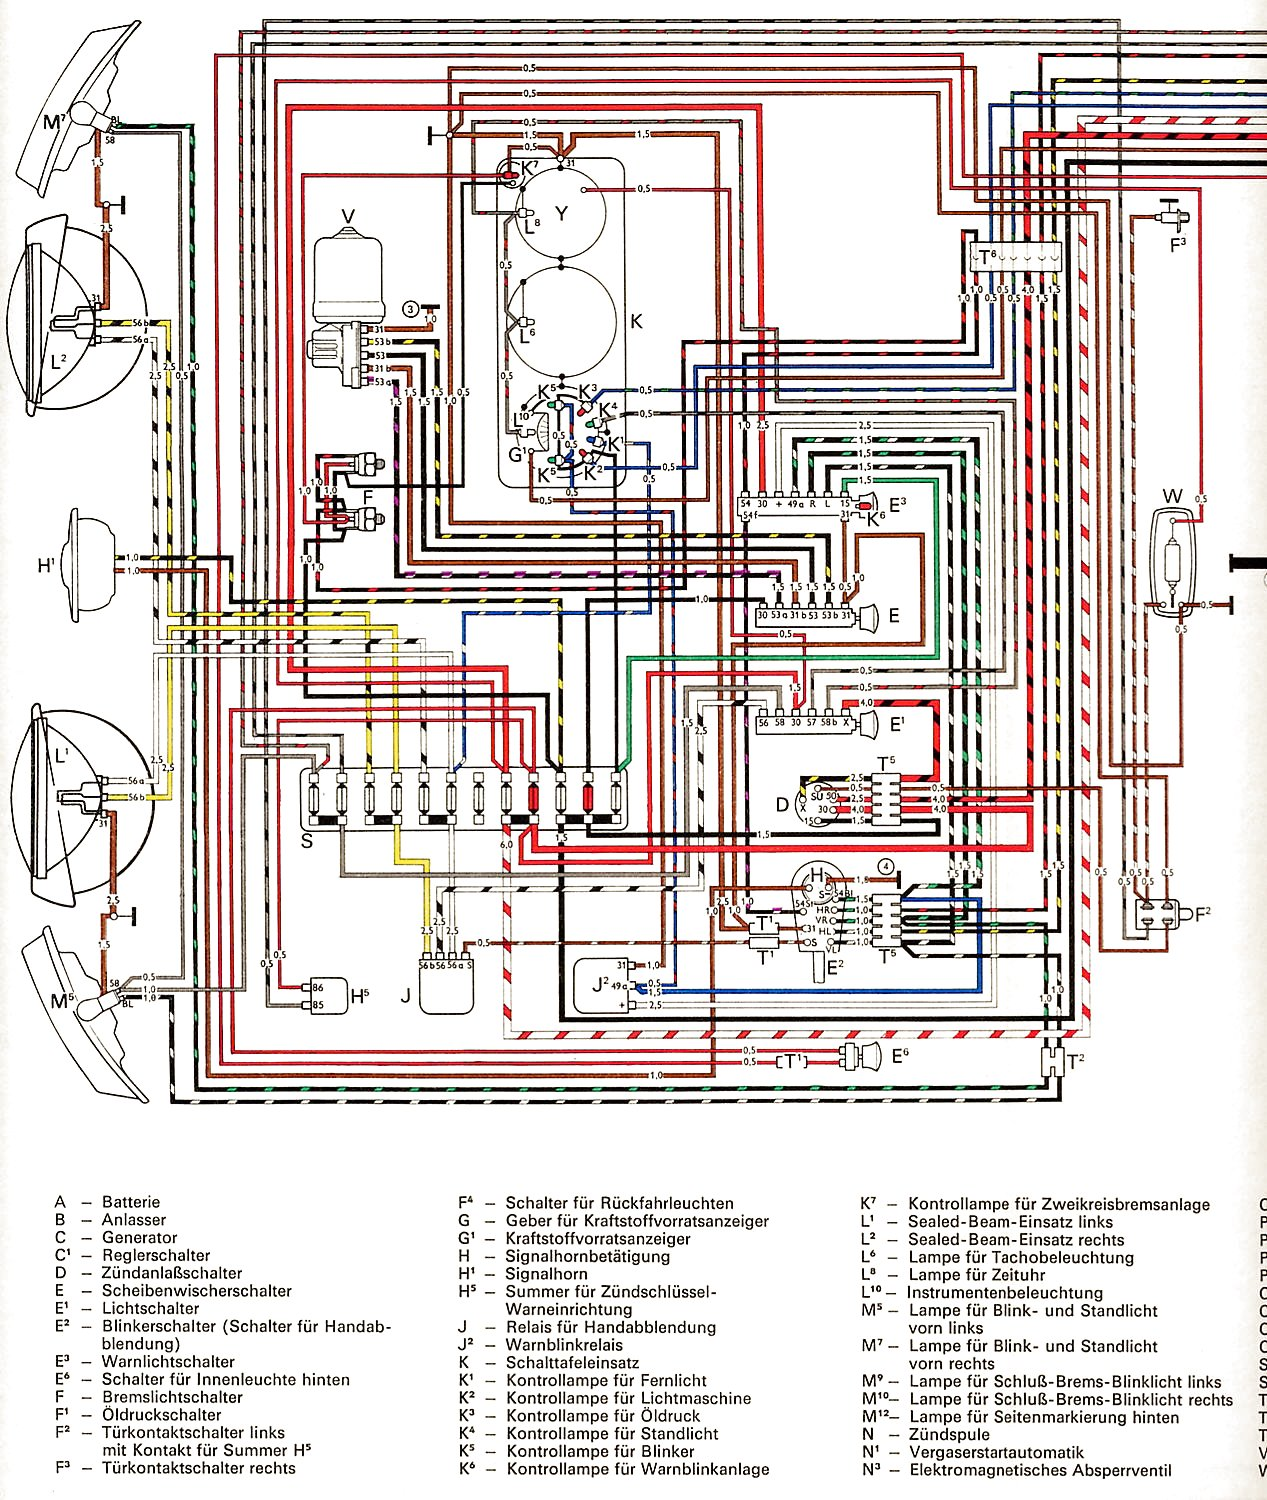 Transporter_USA_from_August_1970 1 1969 vw beetle wiring diagram vw beetle engine wiring \u2022 free 2002 vw beetle wiring diagram at fashall.co